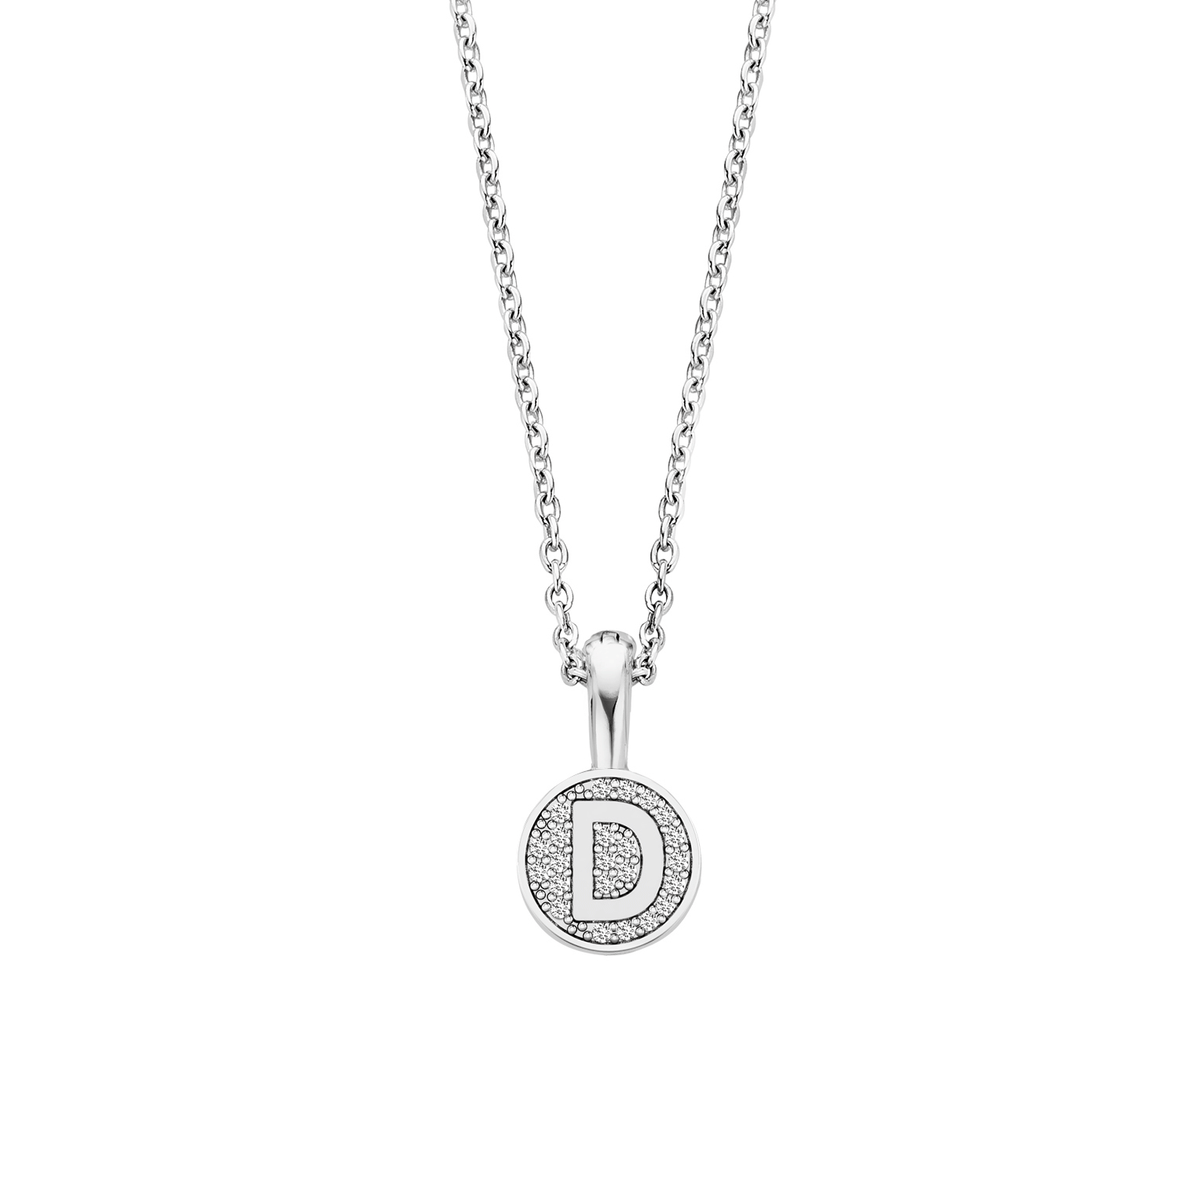 TI SENTO - Milano Necklace 3858LD